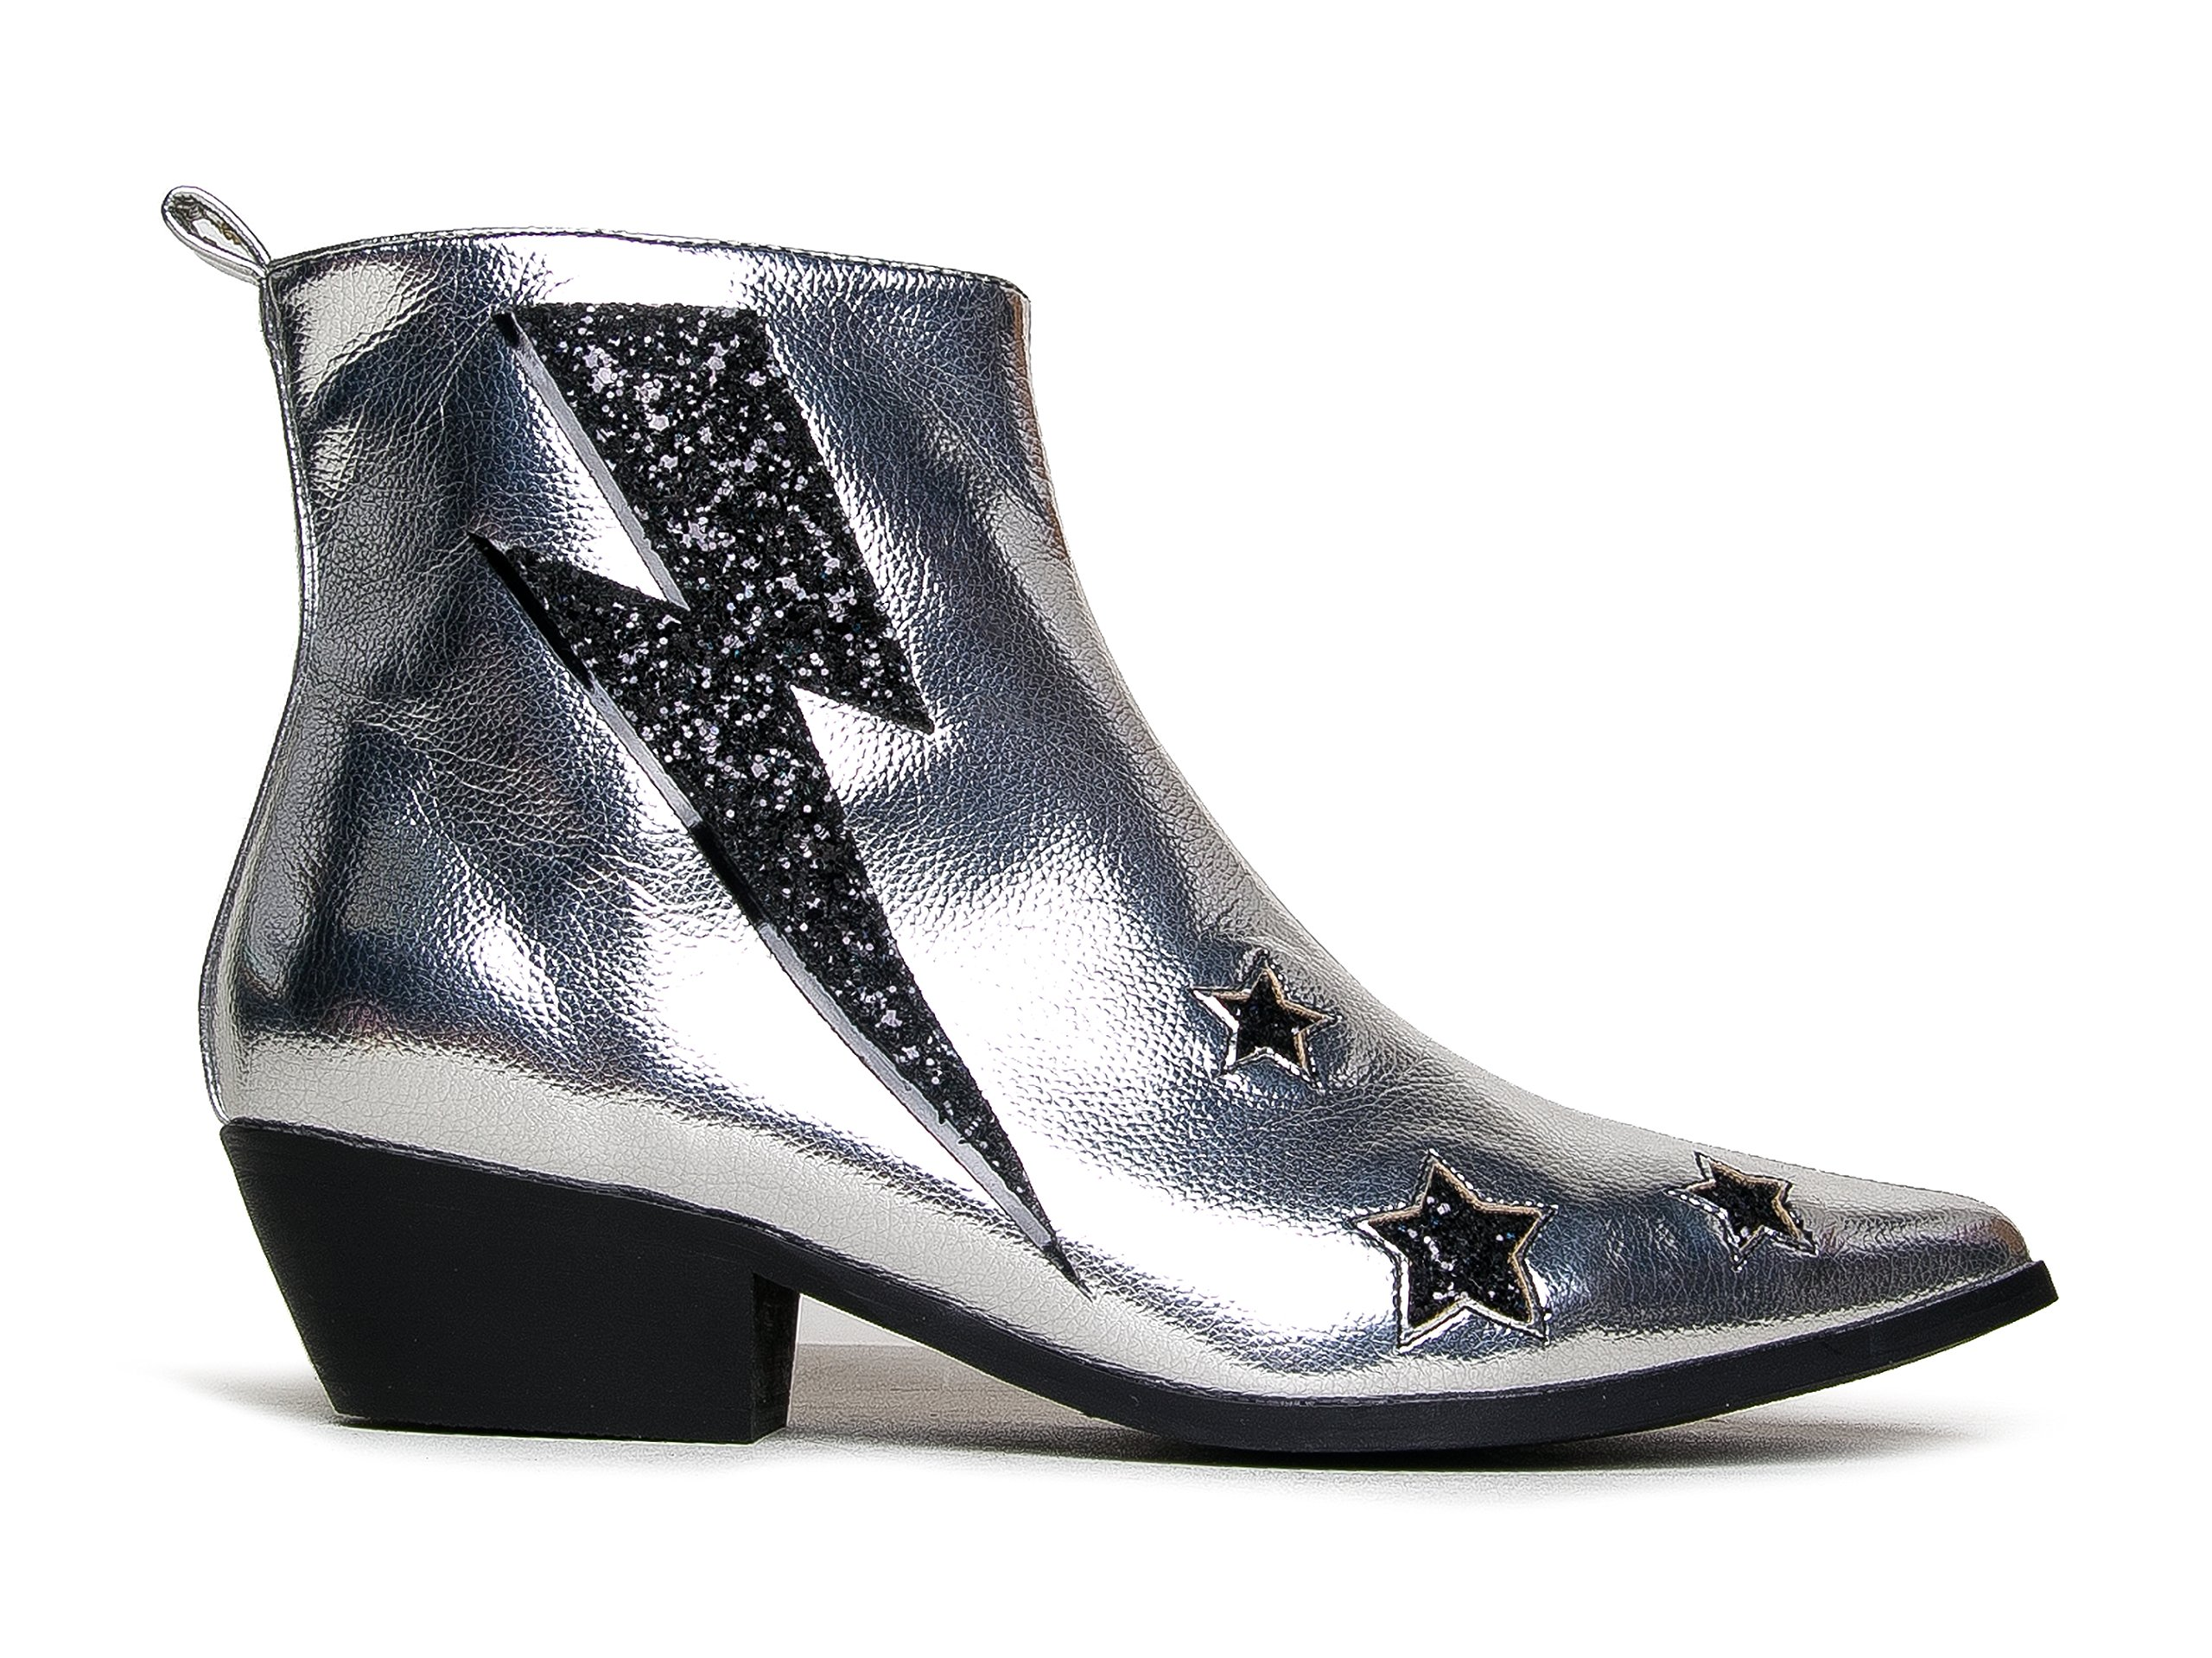 YRU Laso Western Ankle Boots - Lightening Bolt Cowboy Metallic Pointed Toe Boots